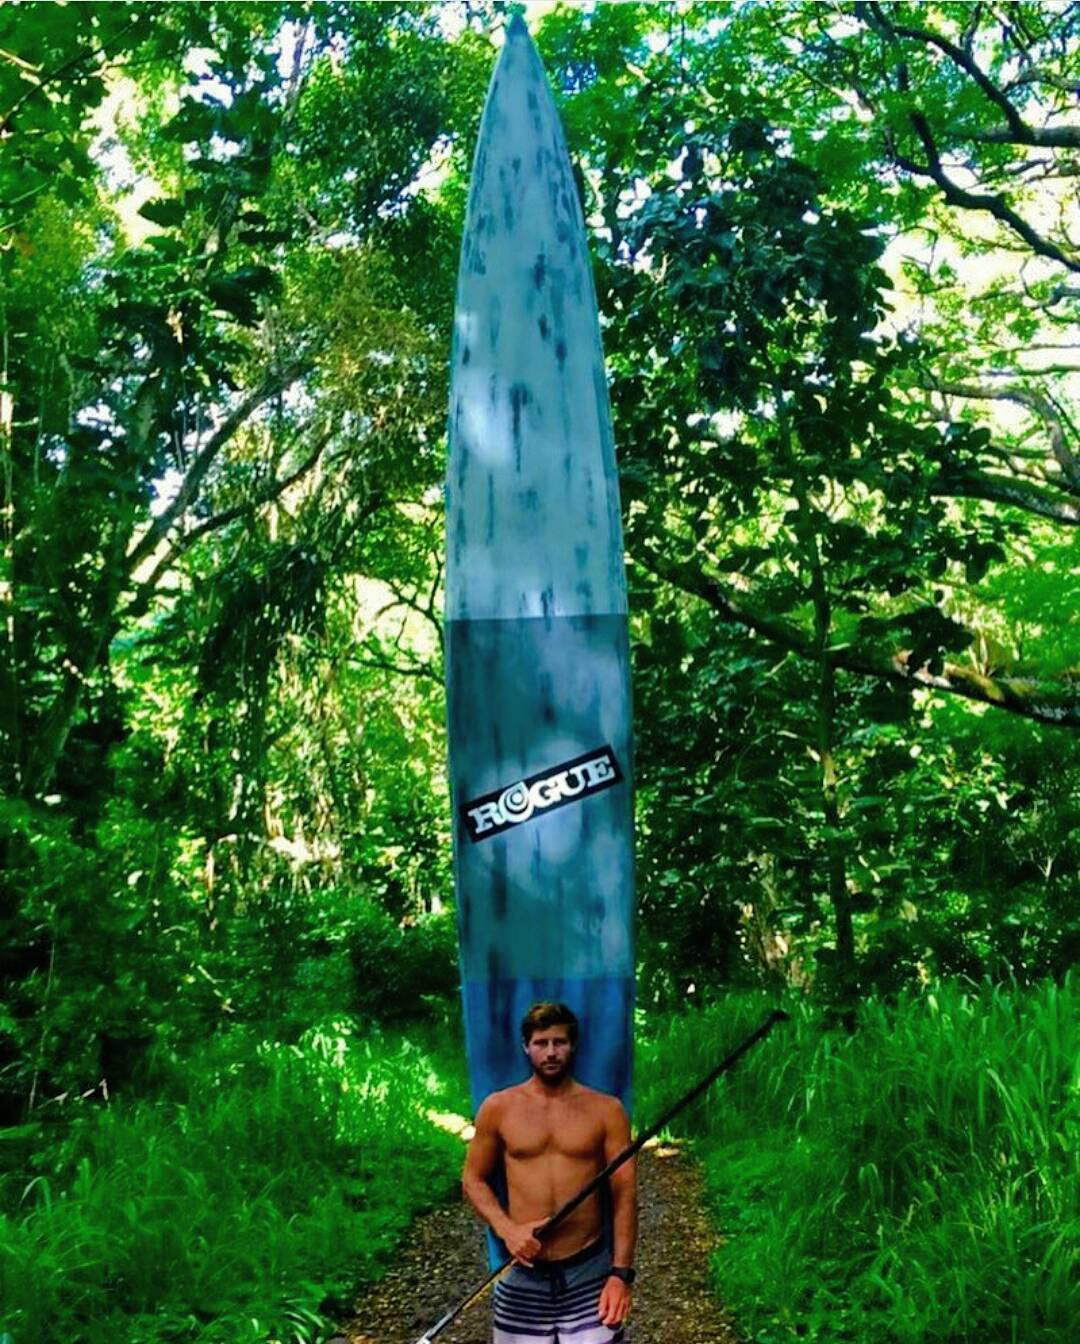 Wishing all the paddlers in today's @molokai2oahu world championships a safe crossing!  A very special shout out goes to our very own @joshriccio who finished in the top ten last year and is looking exceptionally strong right now.  Go gettem Josh!!!